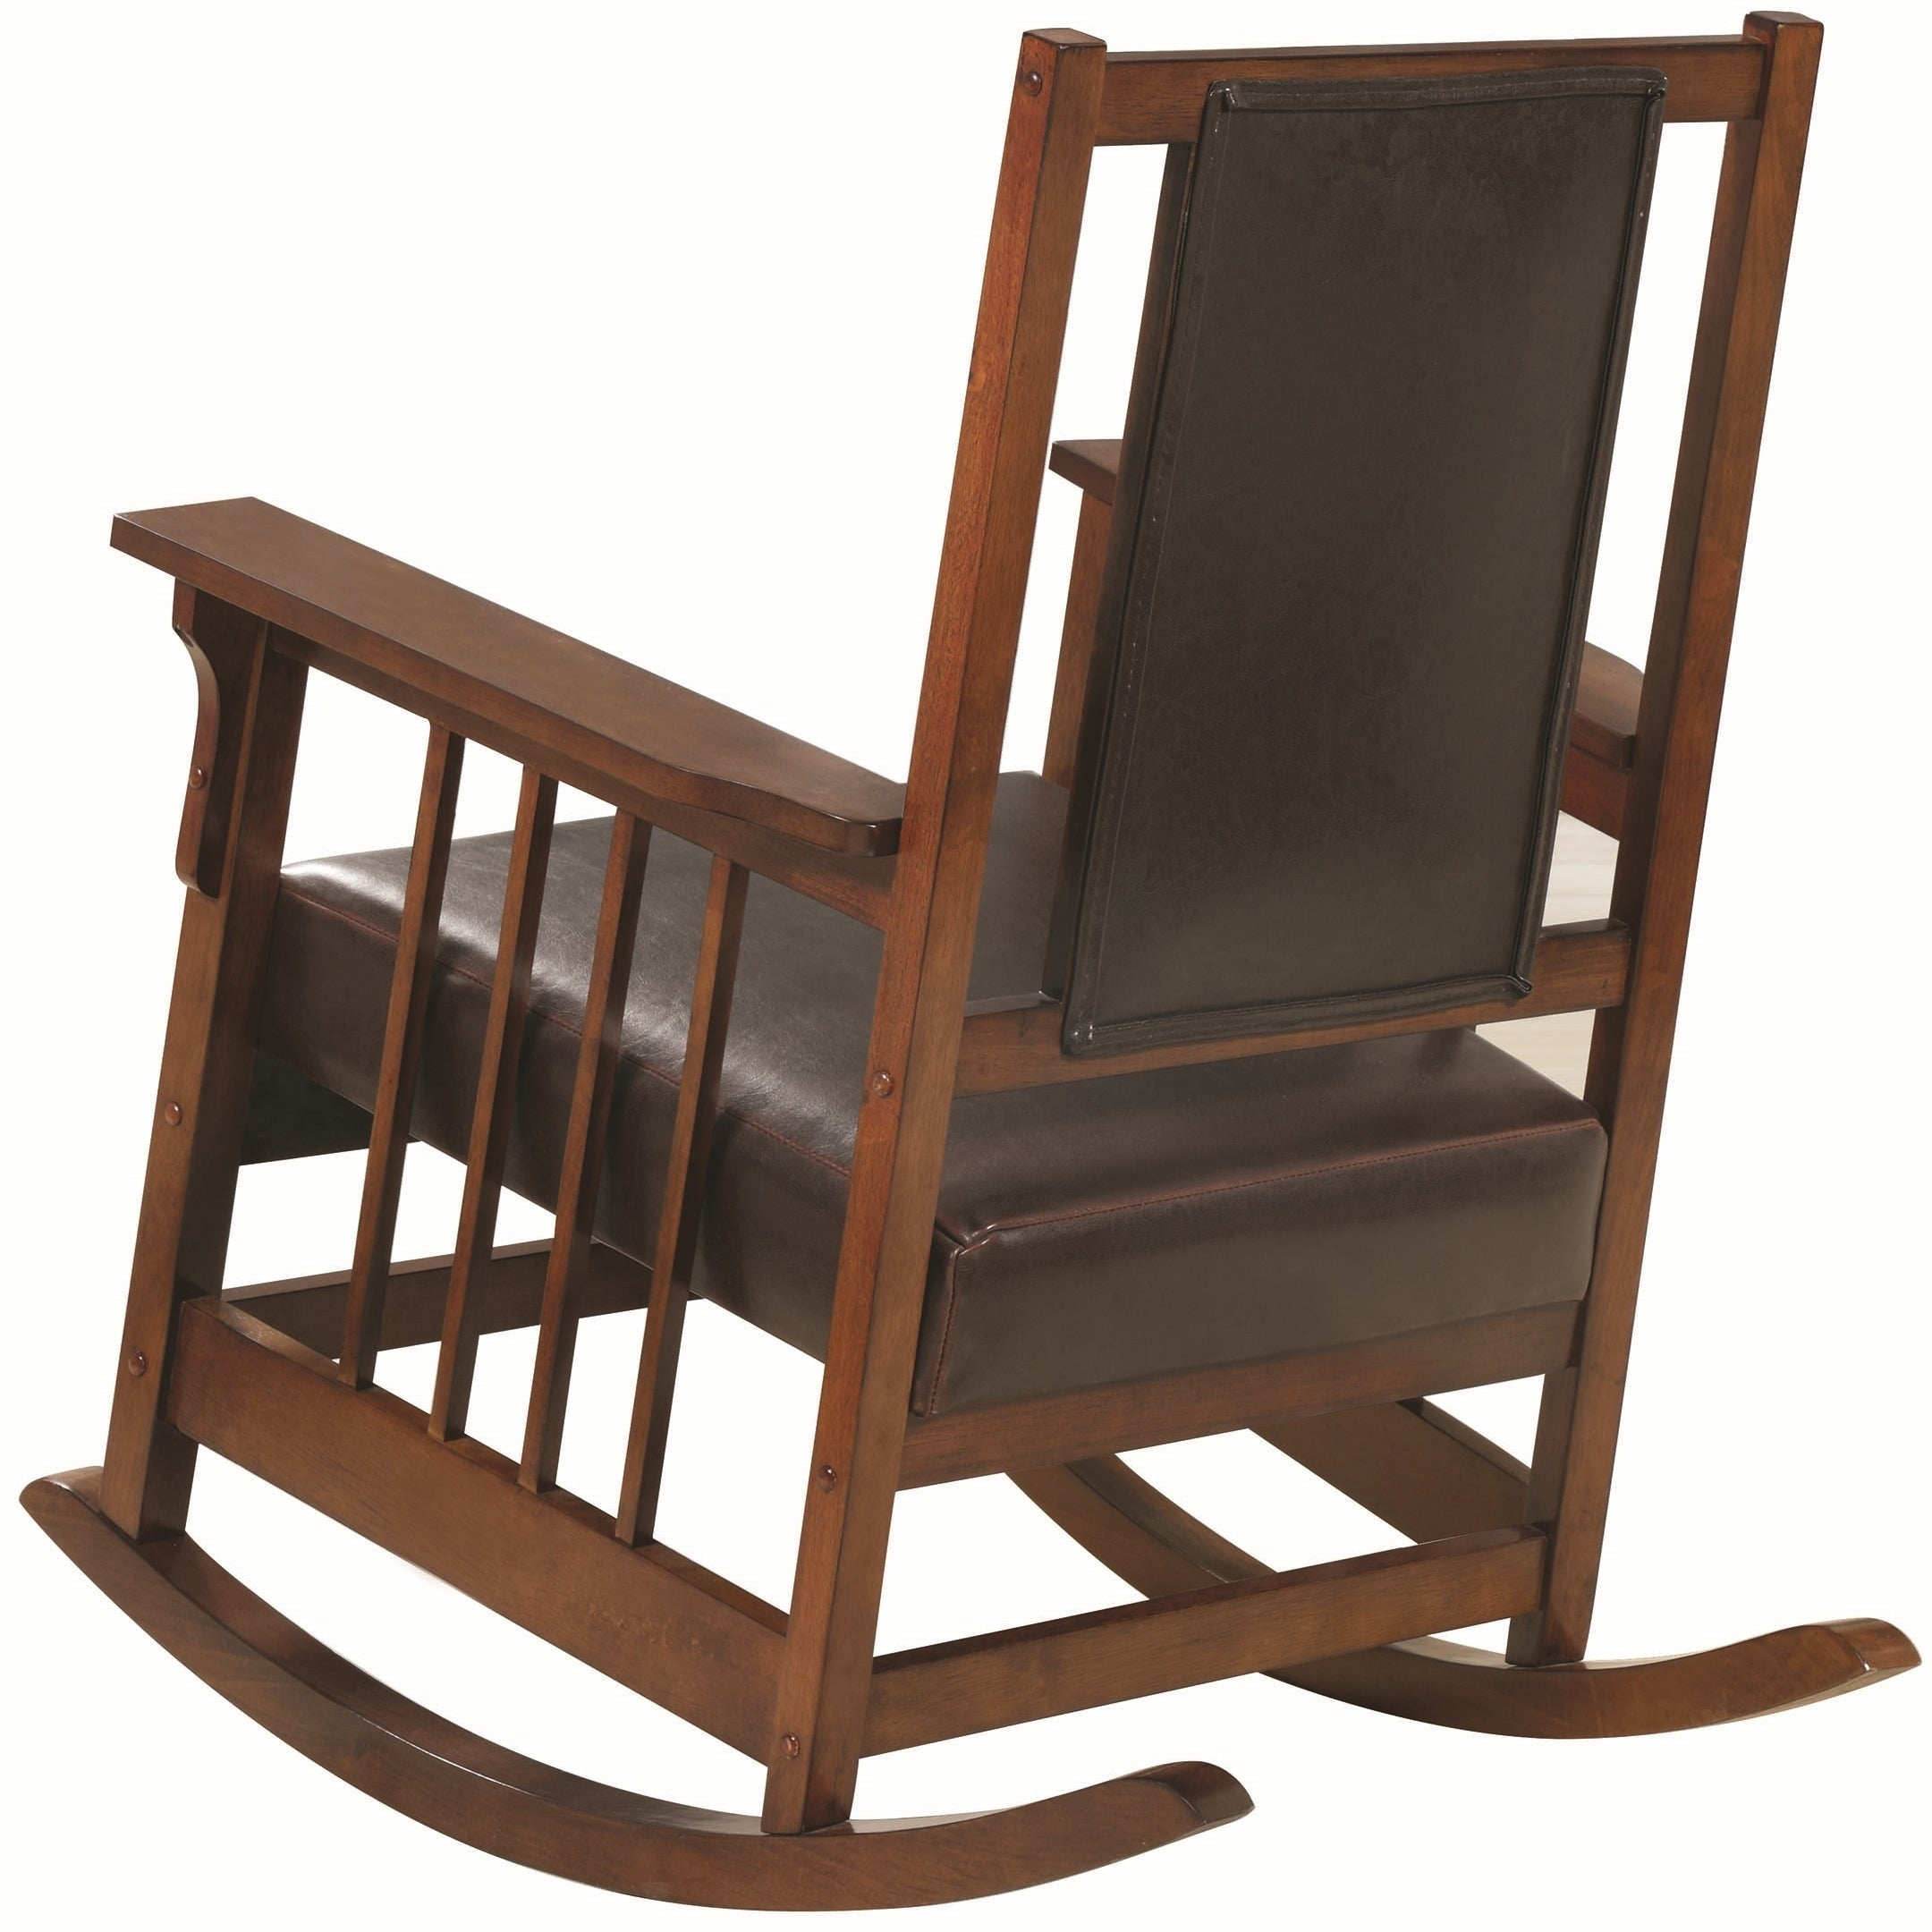 Mission Design Wood Rocking Chair With Brown Leather Seat With Mission Design Wood Rocking Chairs With Brown Leather Seat (#14 of 20)